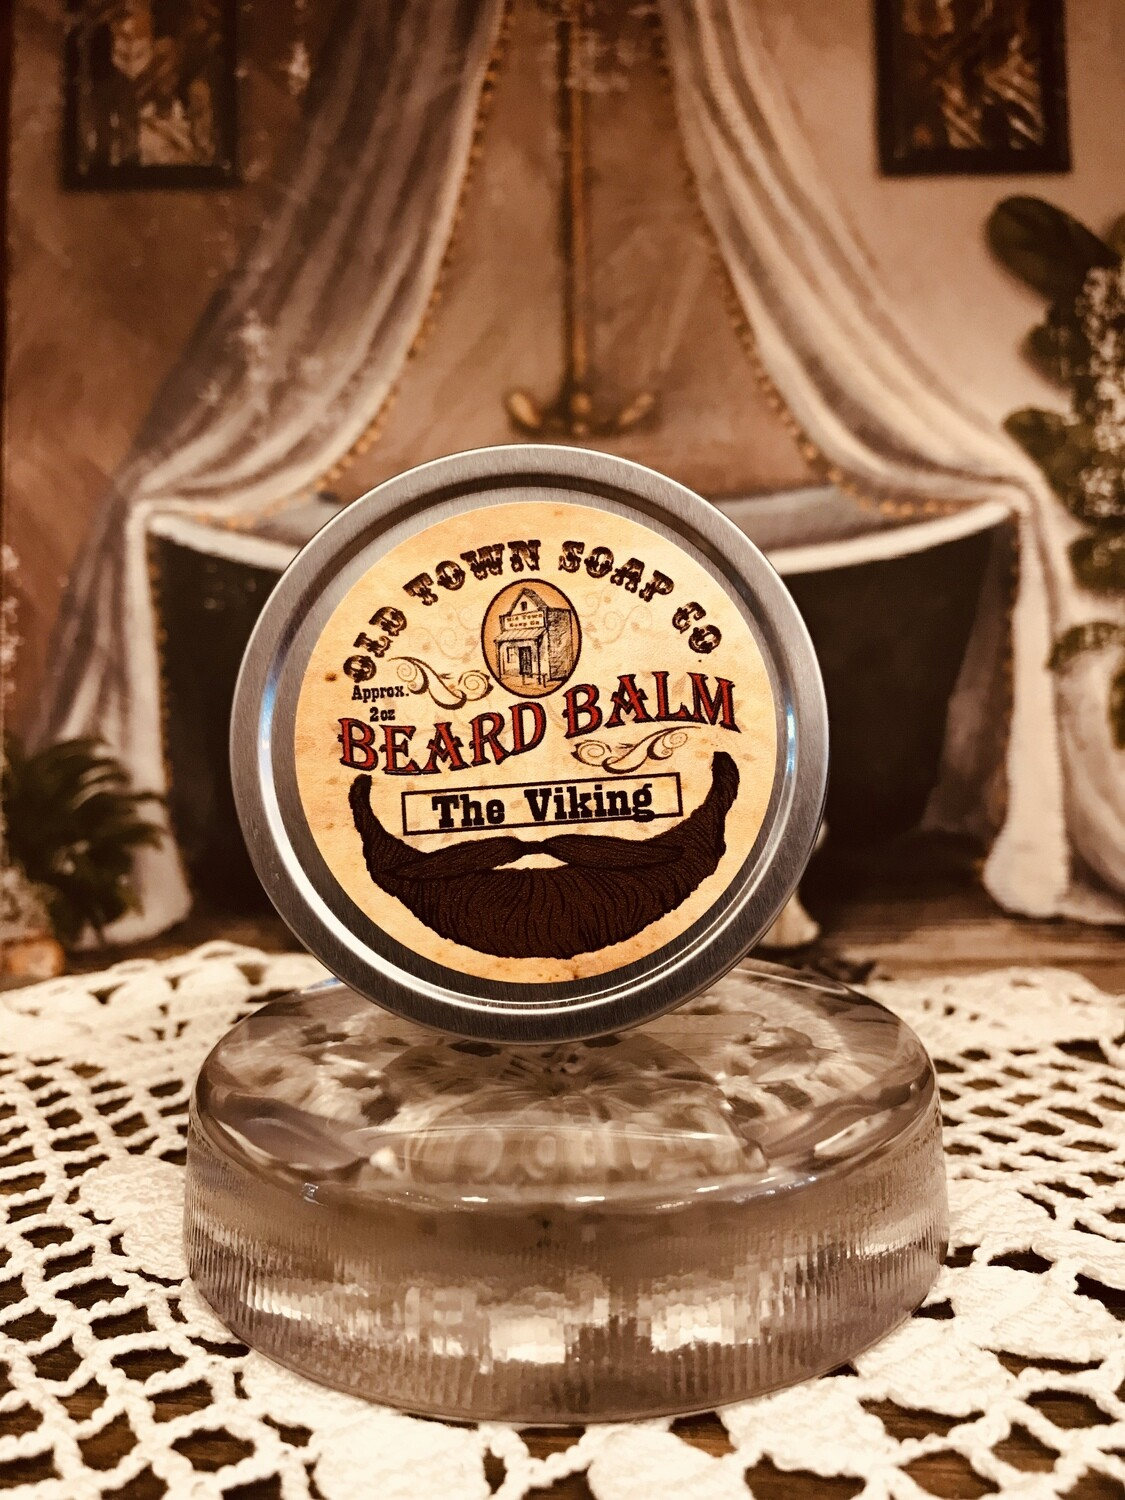 The Viking -Beard Balm